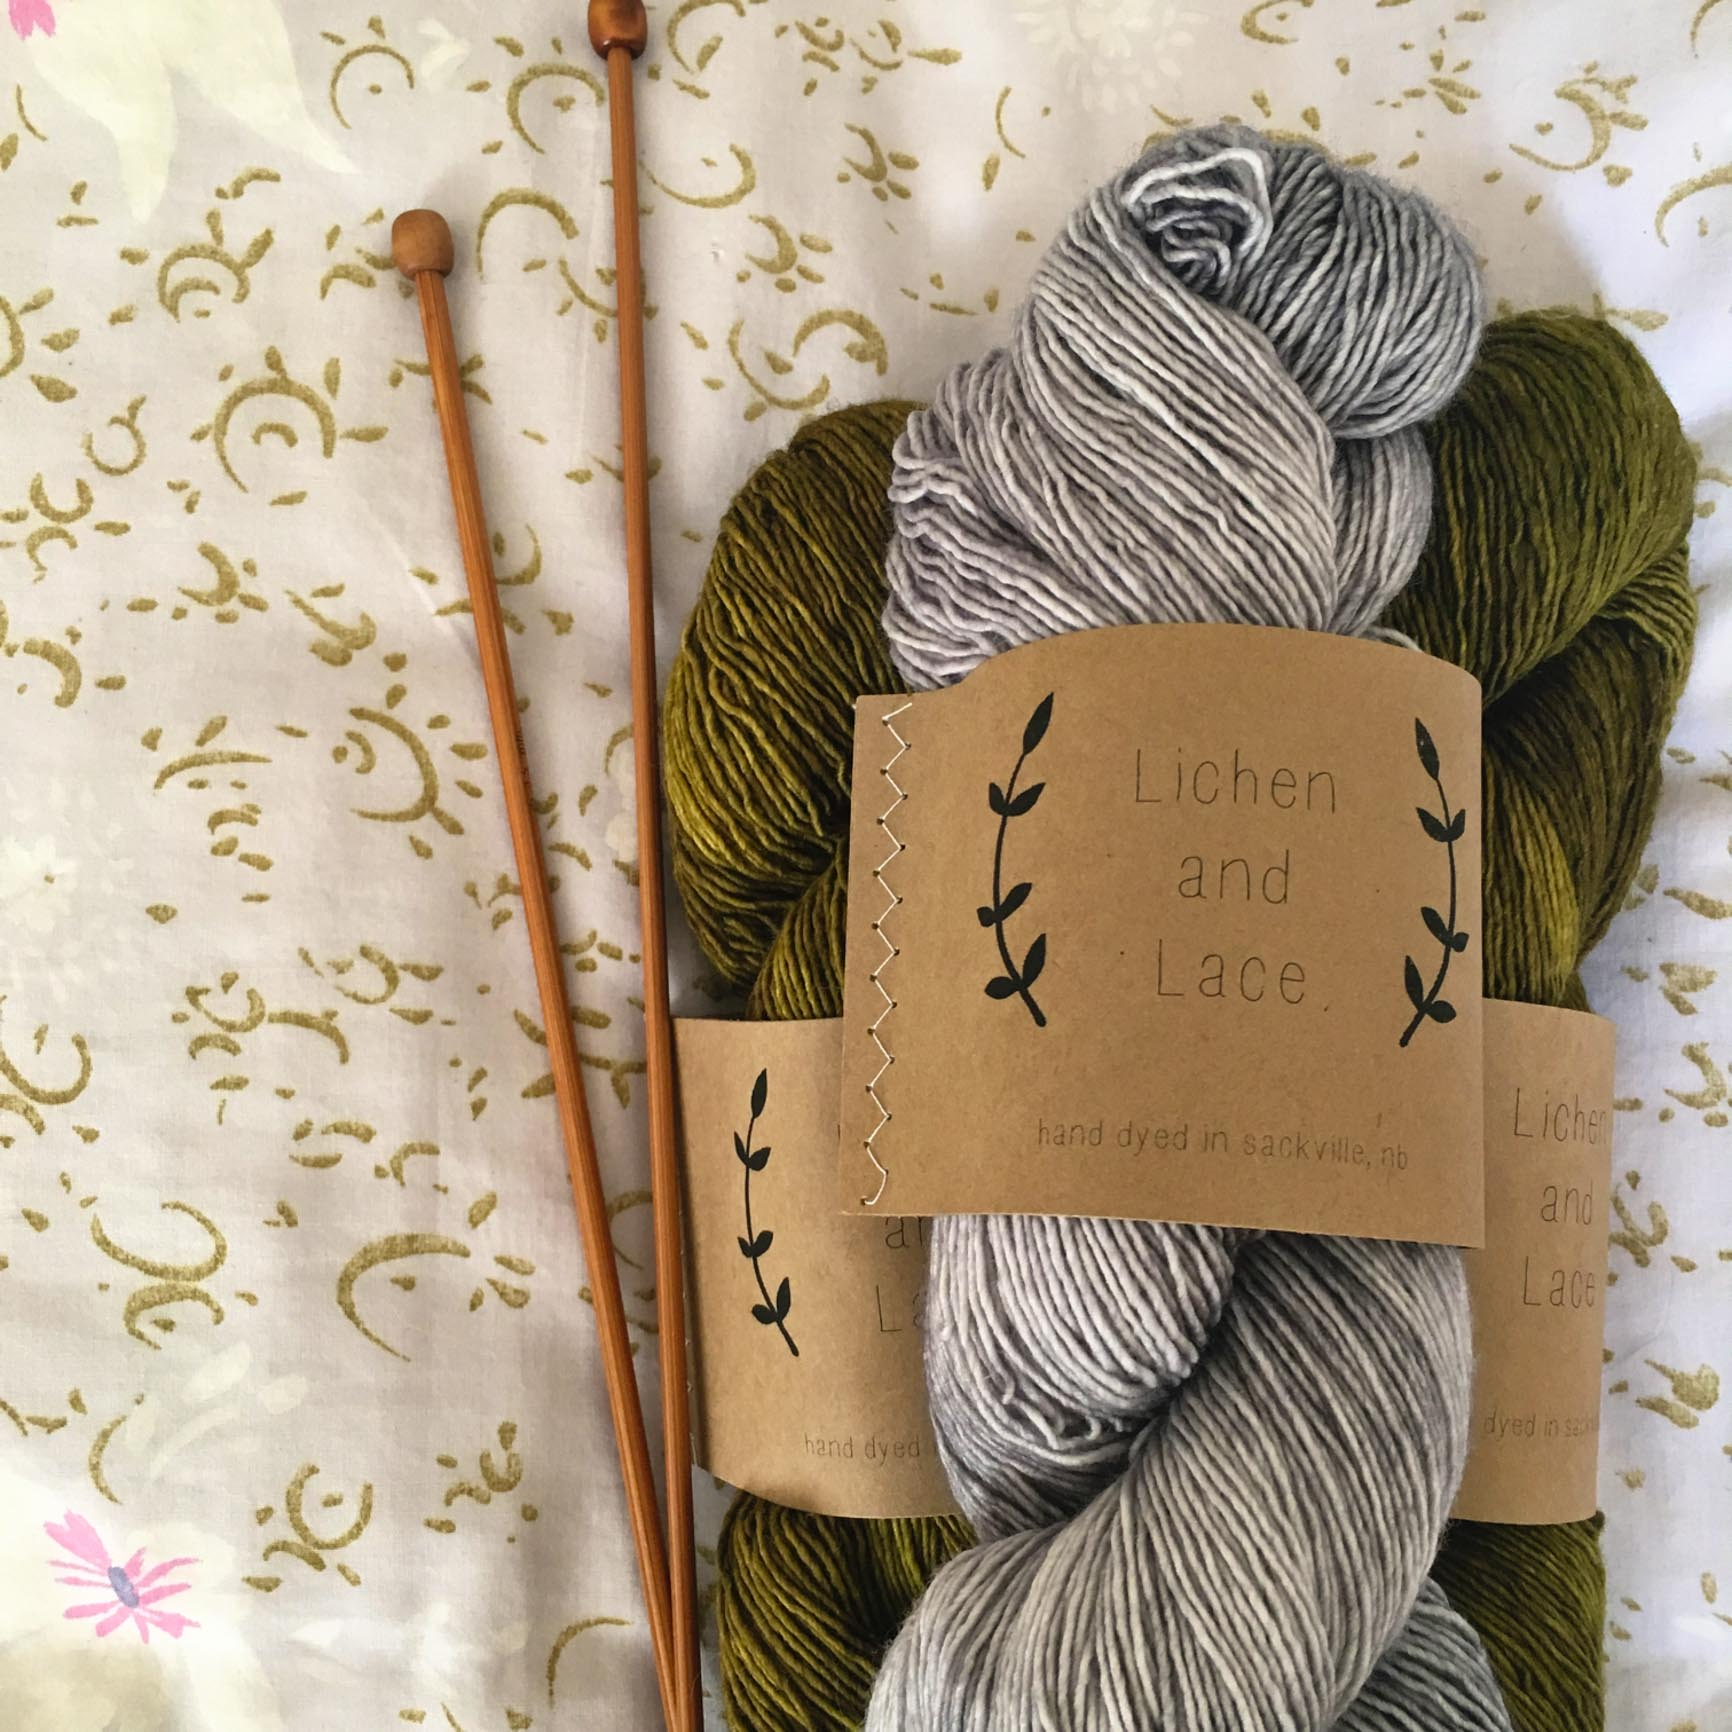 lichen-and-lace-at-loop-london-12